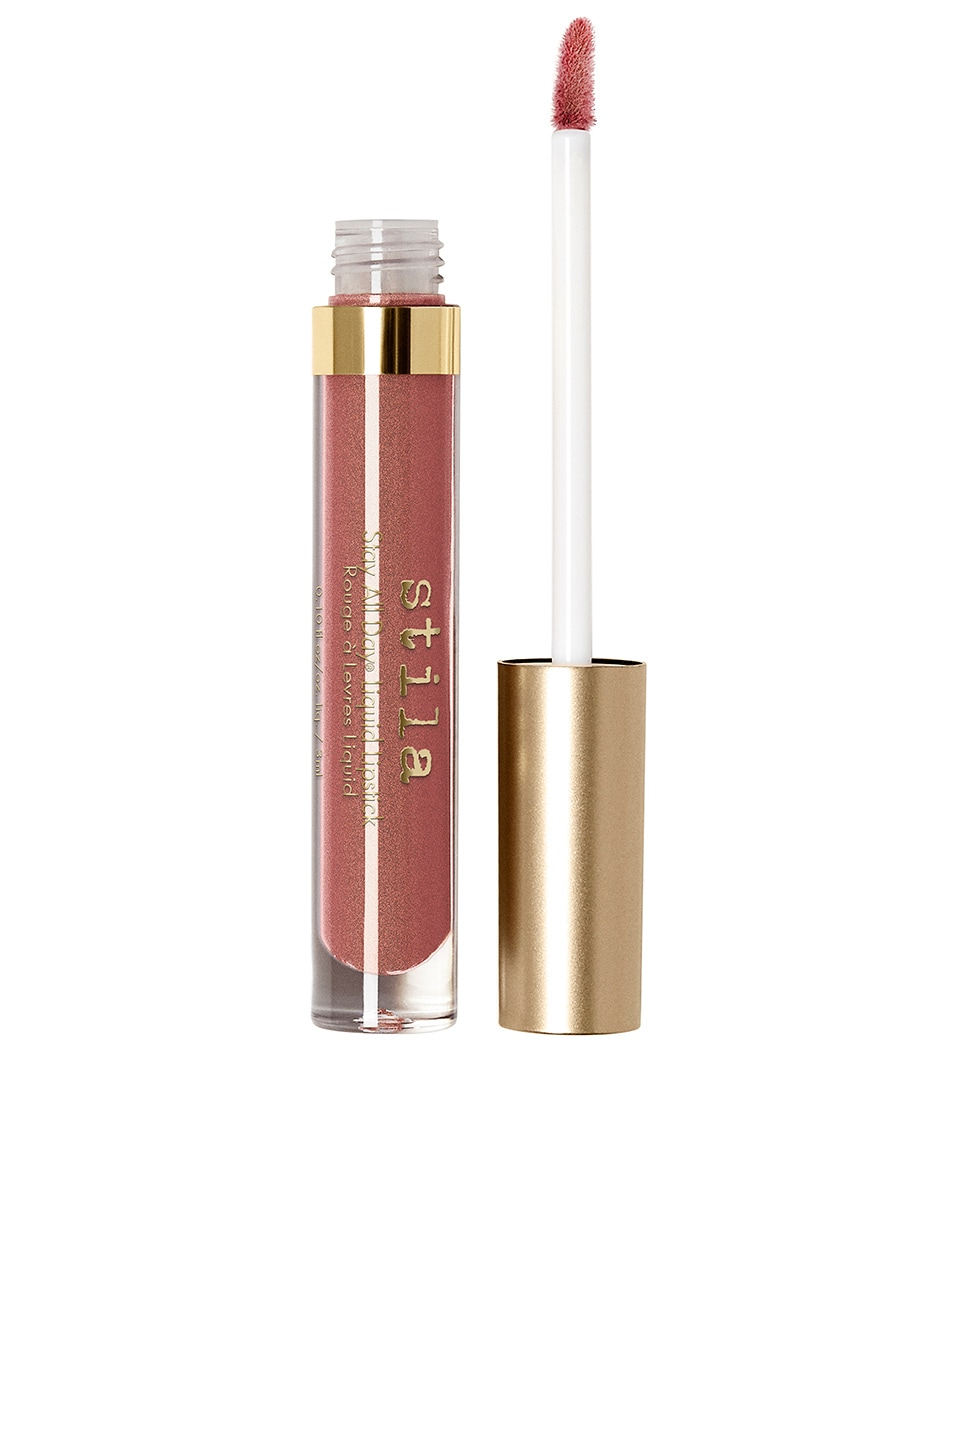 Stila Stay All Day Shimmer Liquid Lipstick in Miele Shimmer